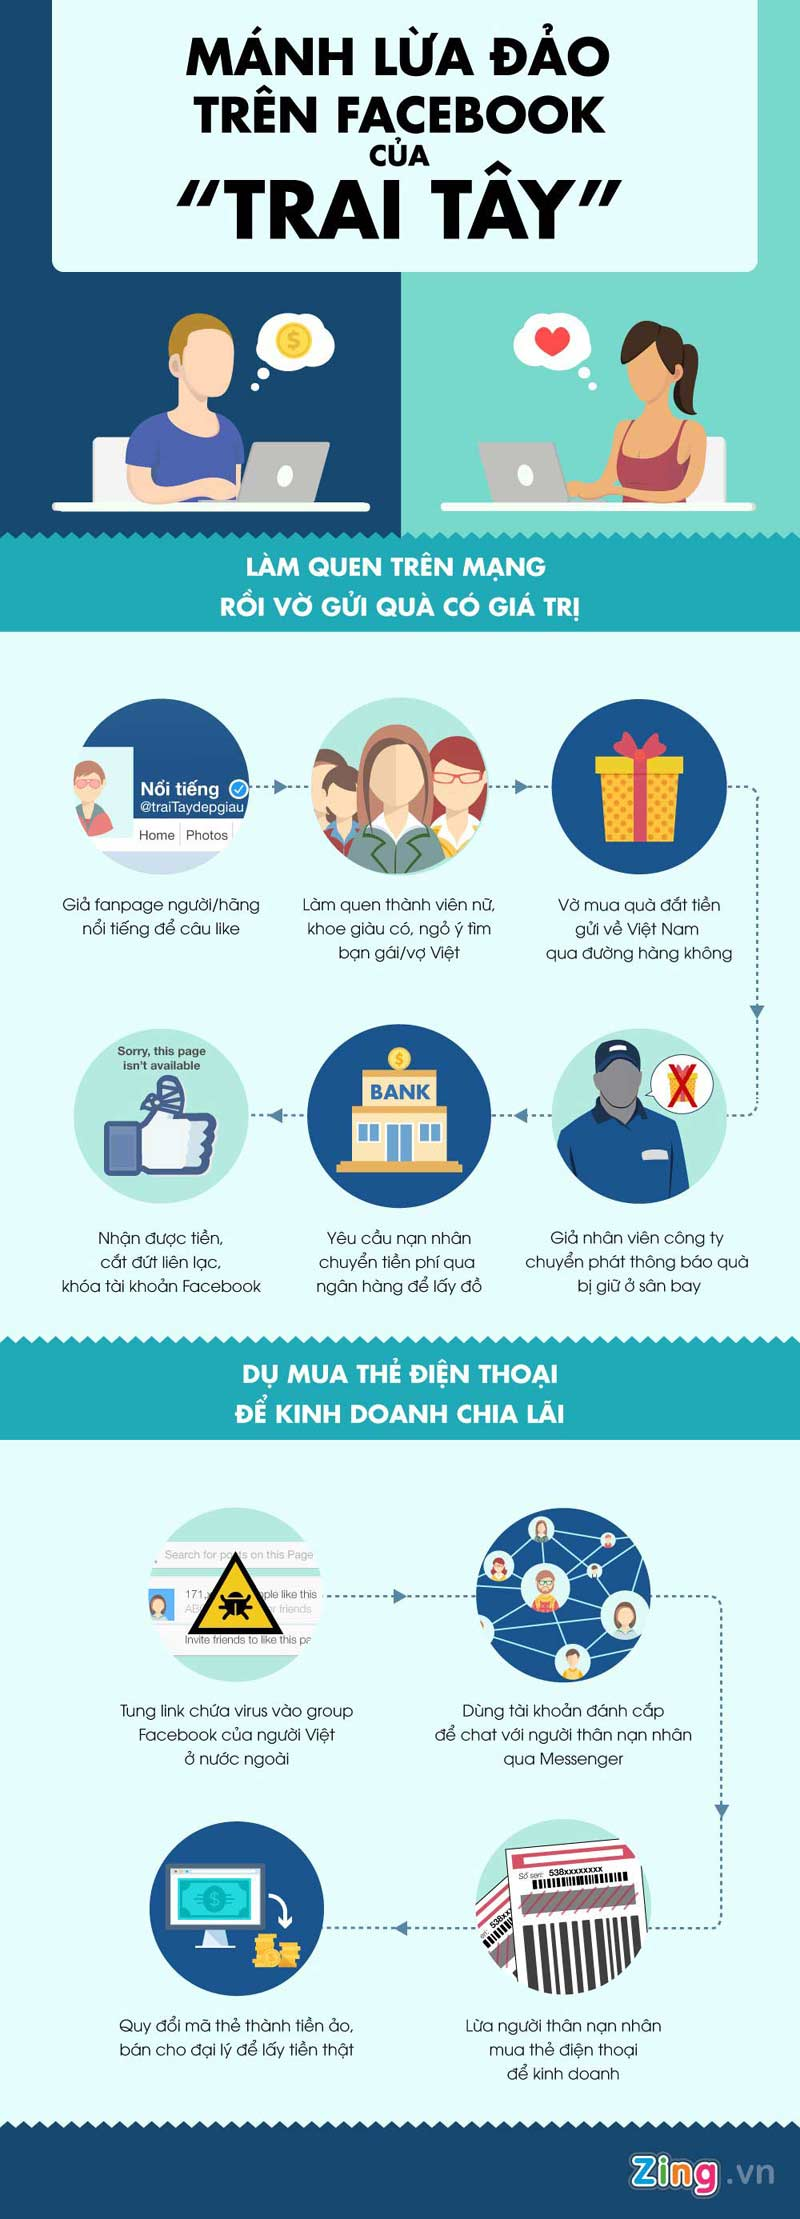 "infographic: lat tay manh lua tinh, tien tren facebook cua ""trai tay"" hinh anh 1"